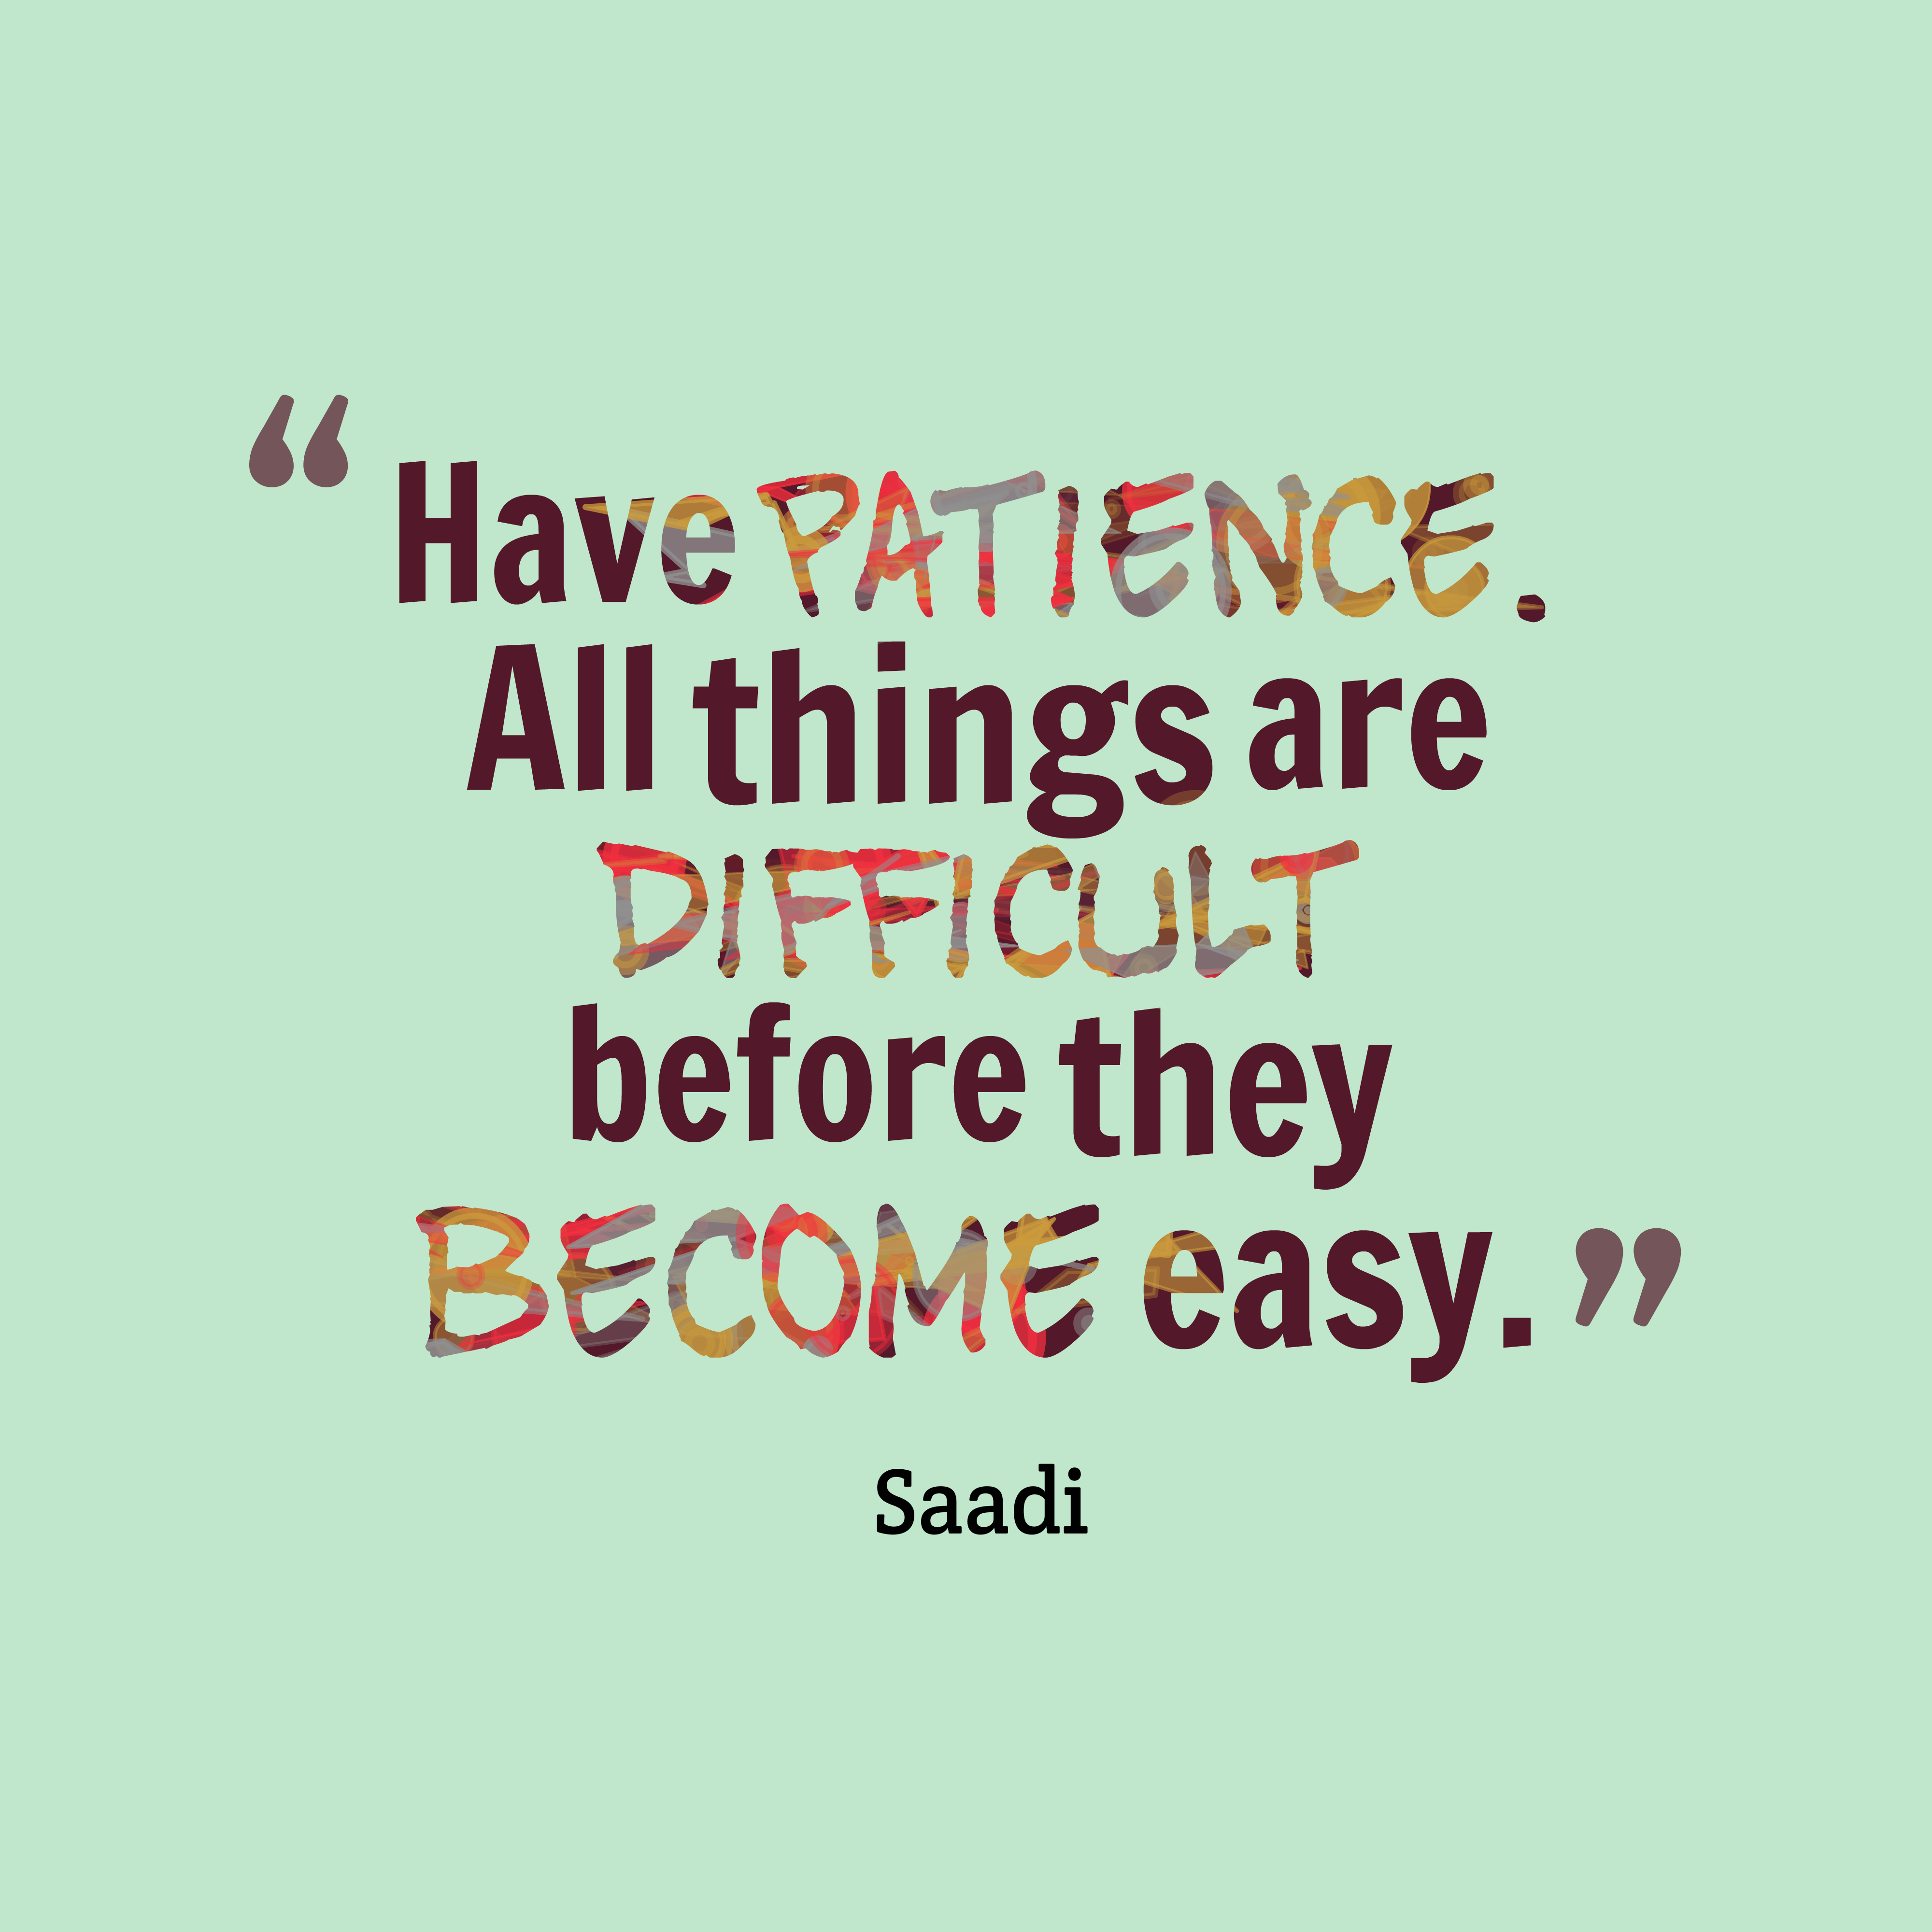 Picture Saadi Quote About Patience Quotescover Com